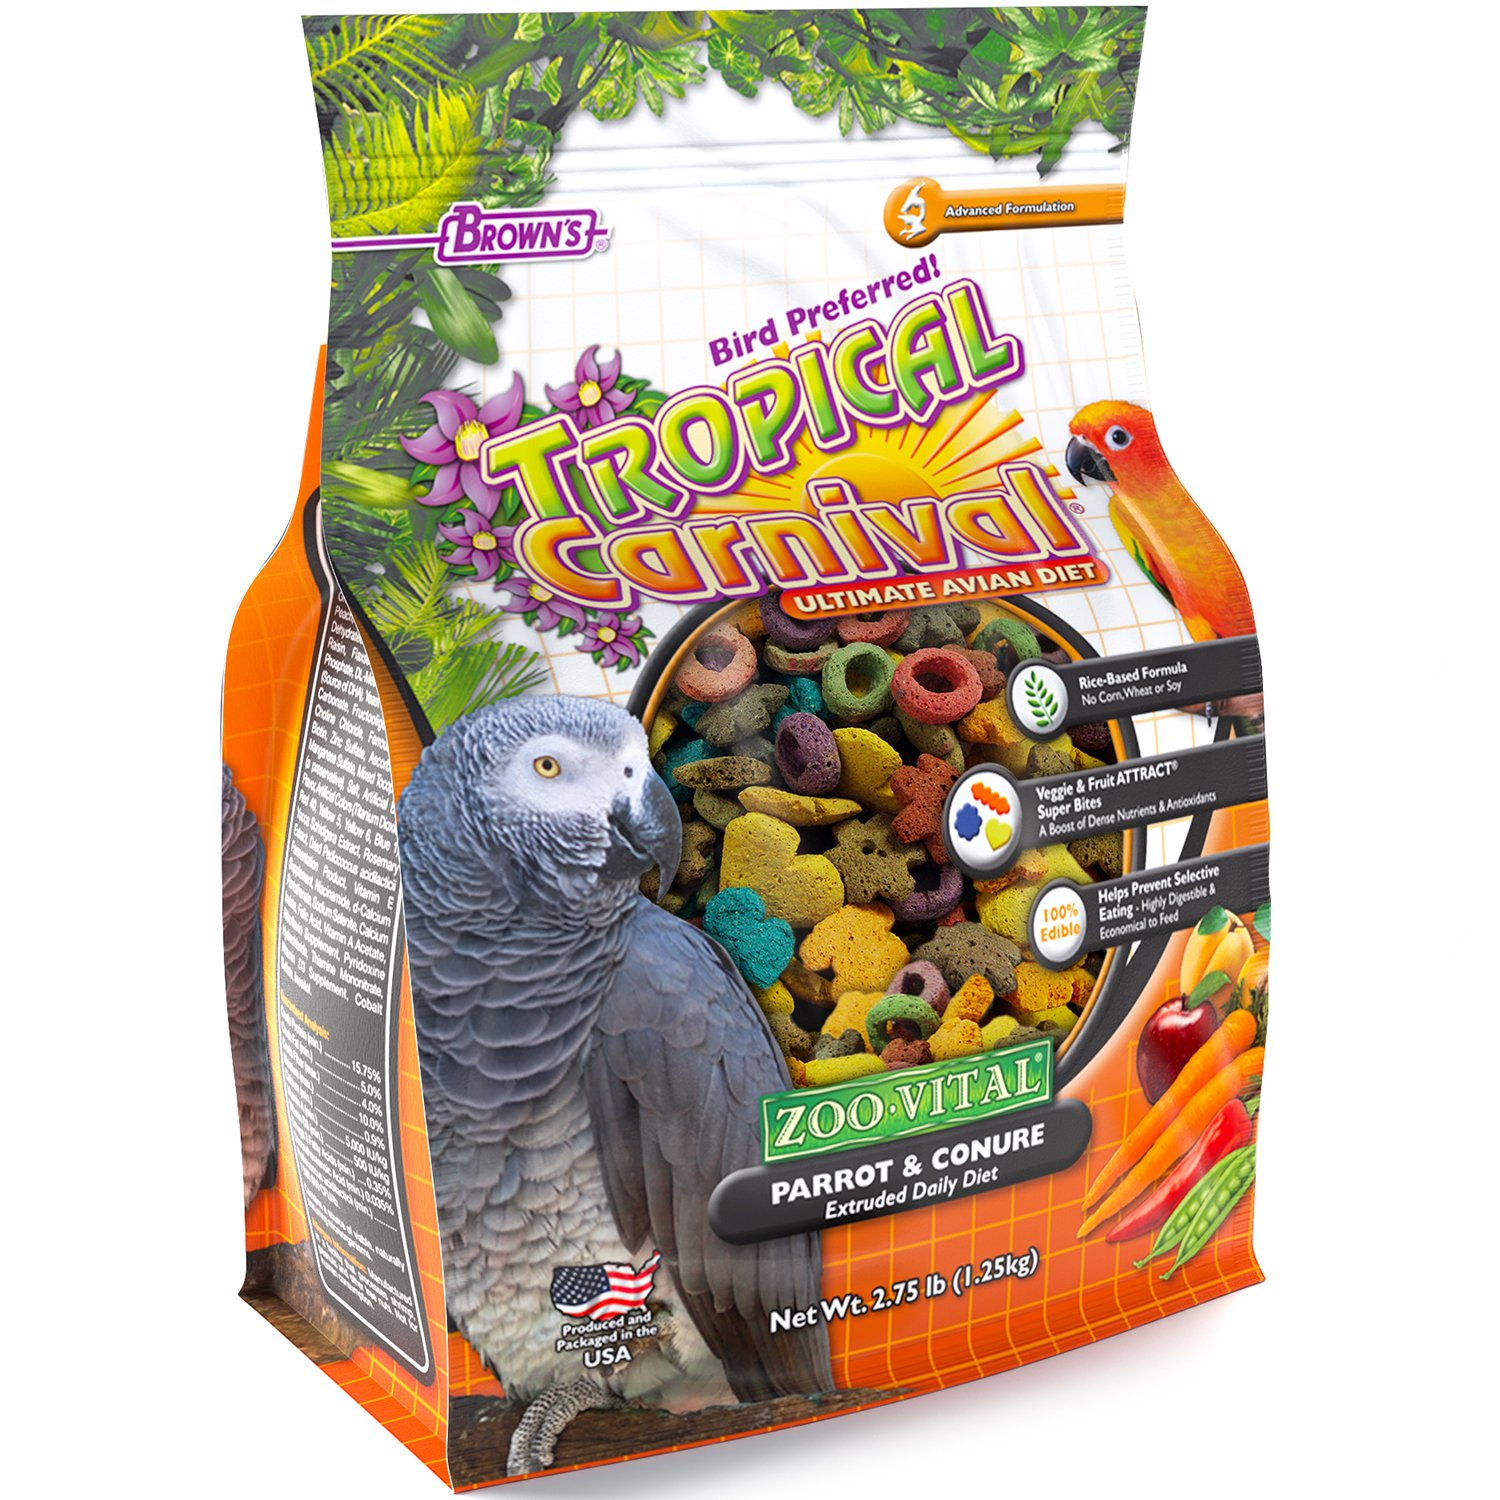 F.M. Brown'S Tropical Carnival Zoo-Vital Parrot & Conure Pellet Daily Diet With Probiotics For Healthy Digestion, 2.75-Lb Bag - Grain-Free, Rice-Based Formula, 100% Edible, Prevents Selective Eating by Tropical Carnival